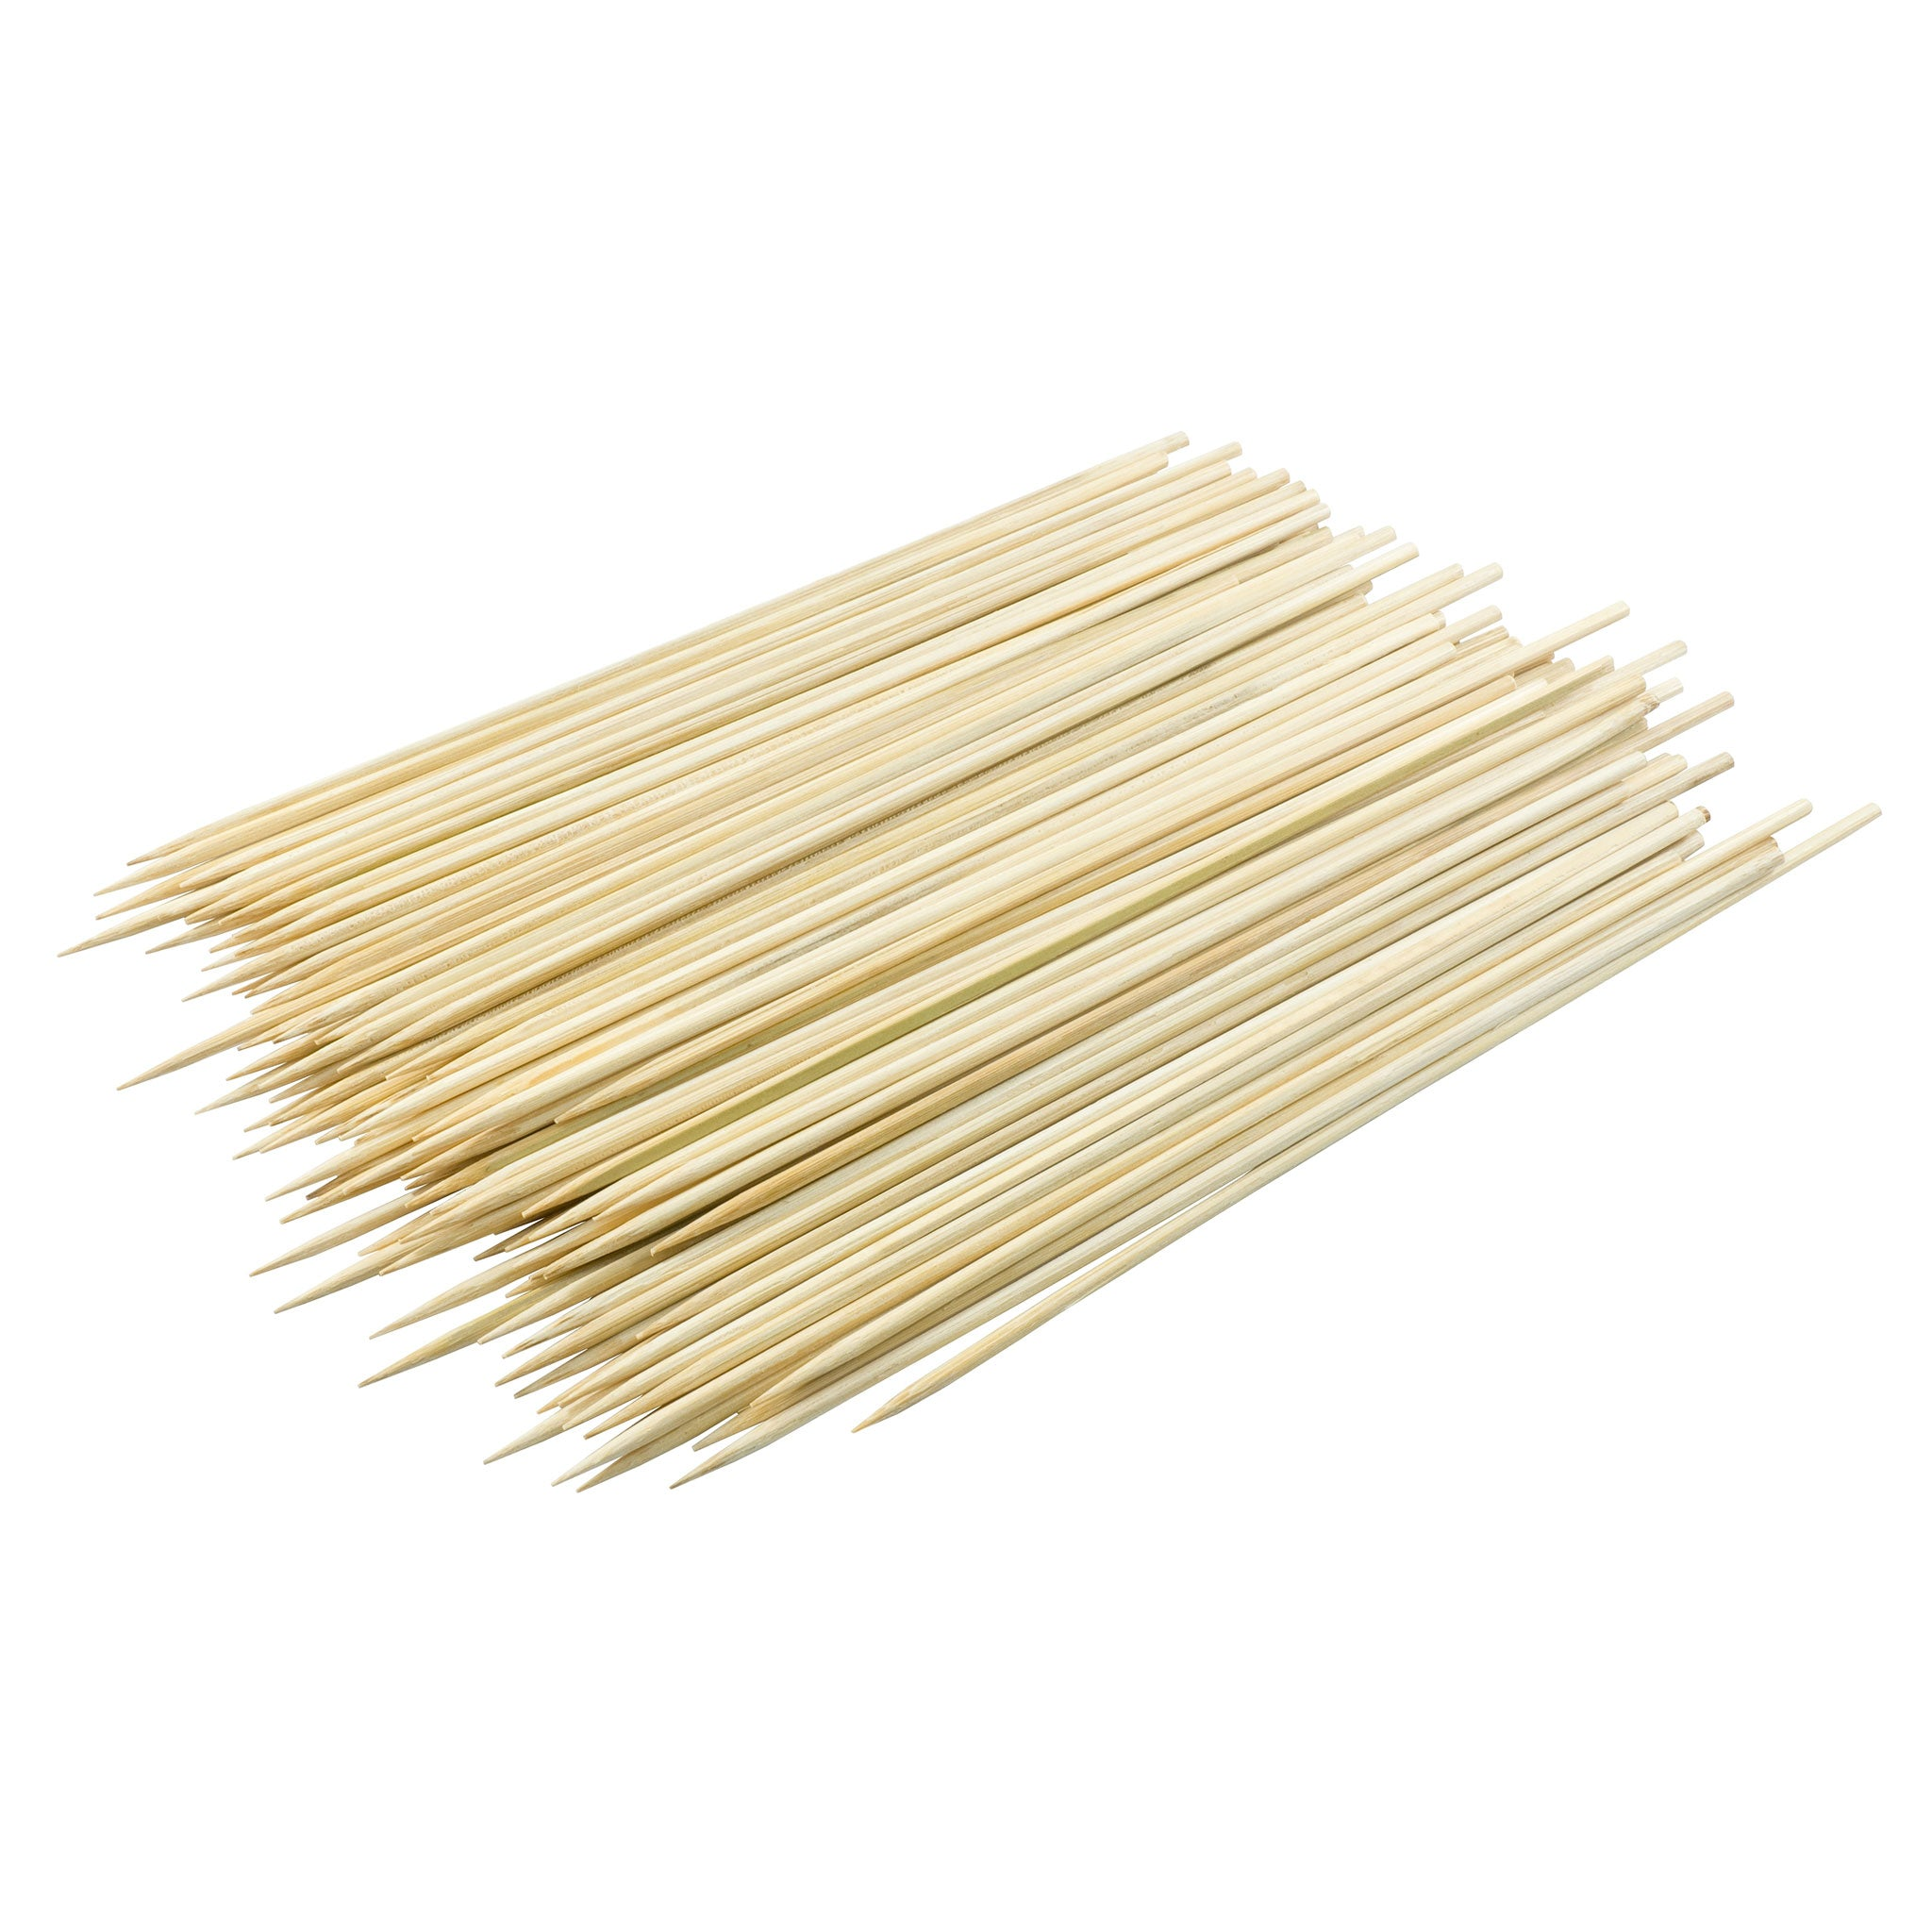 Bamboo Skewers (100pcs) - 15cm (6 inch) by XO